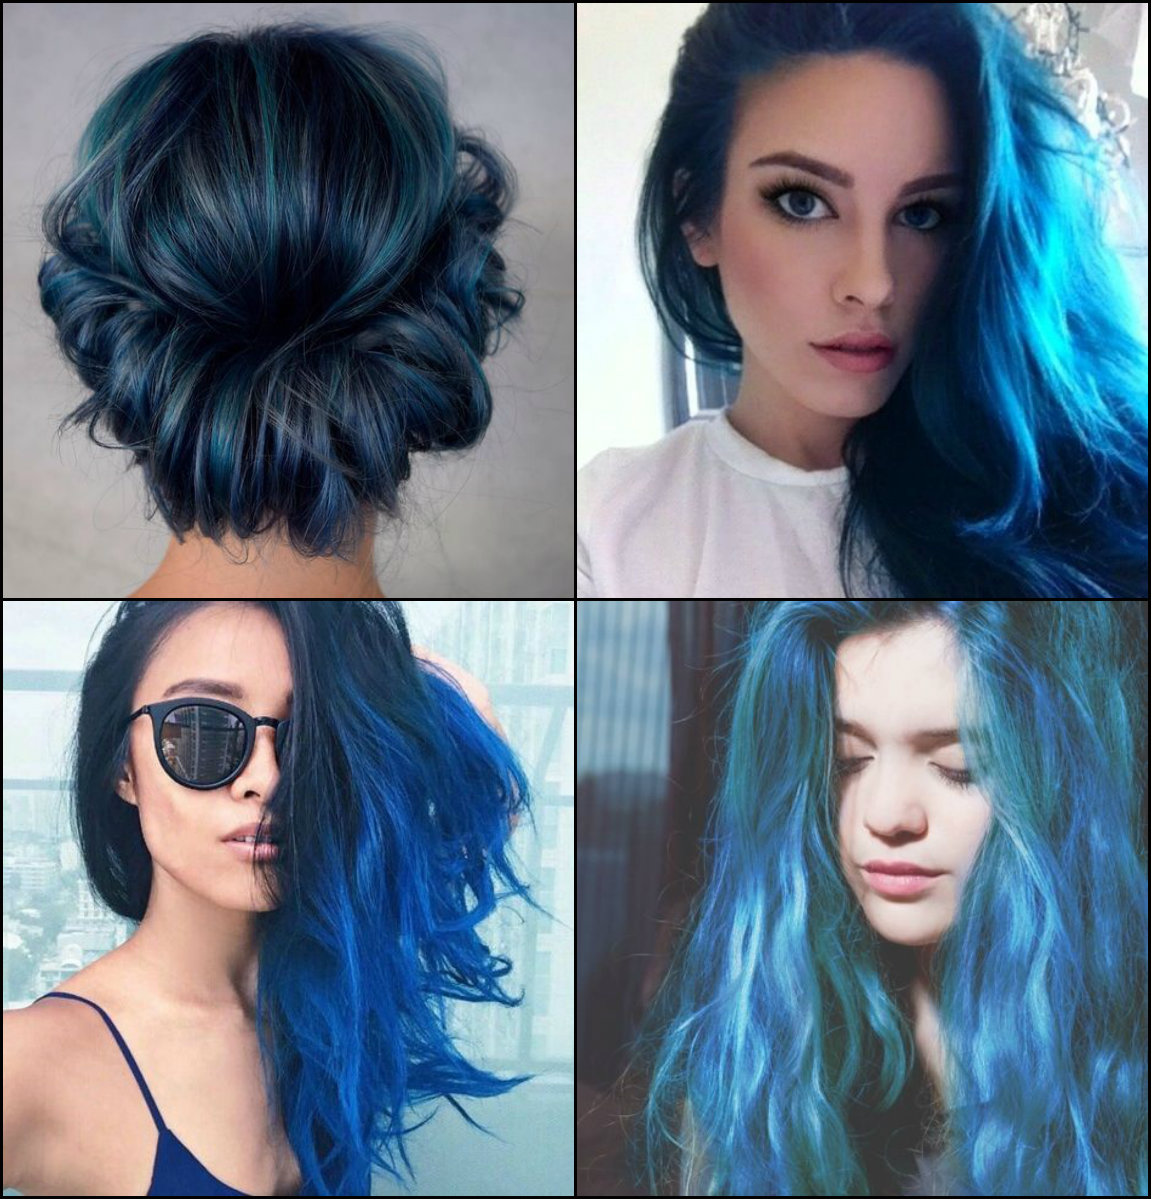 Hairstyles And Color For 2017 : Hair Colors Archives Hairstyles 2017, Hair Colors and Haircuts